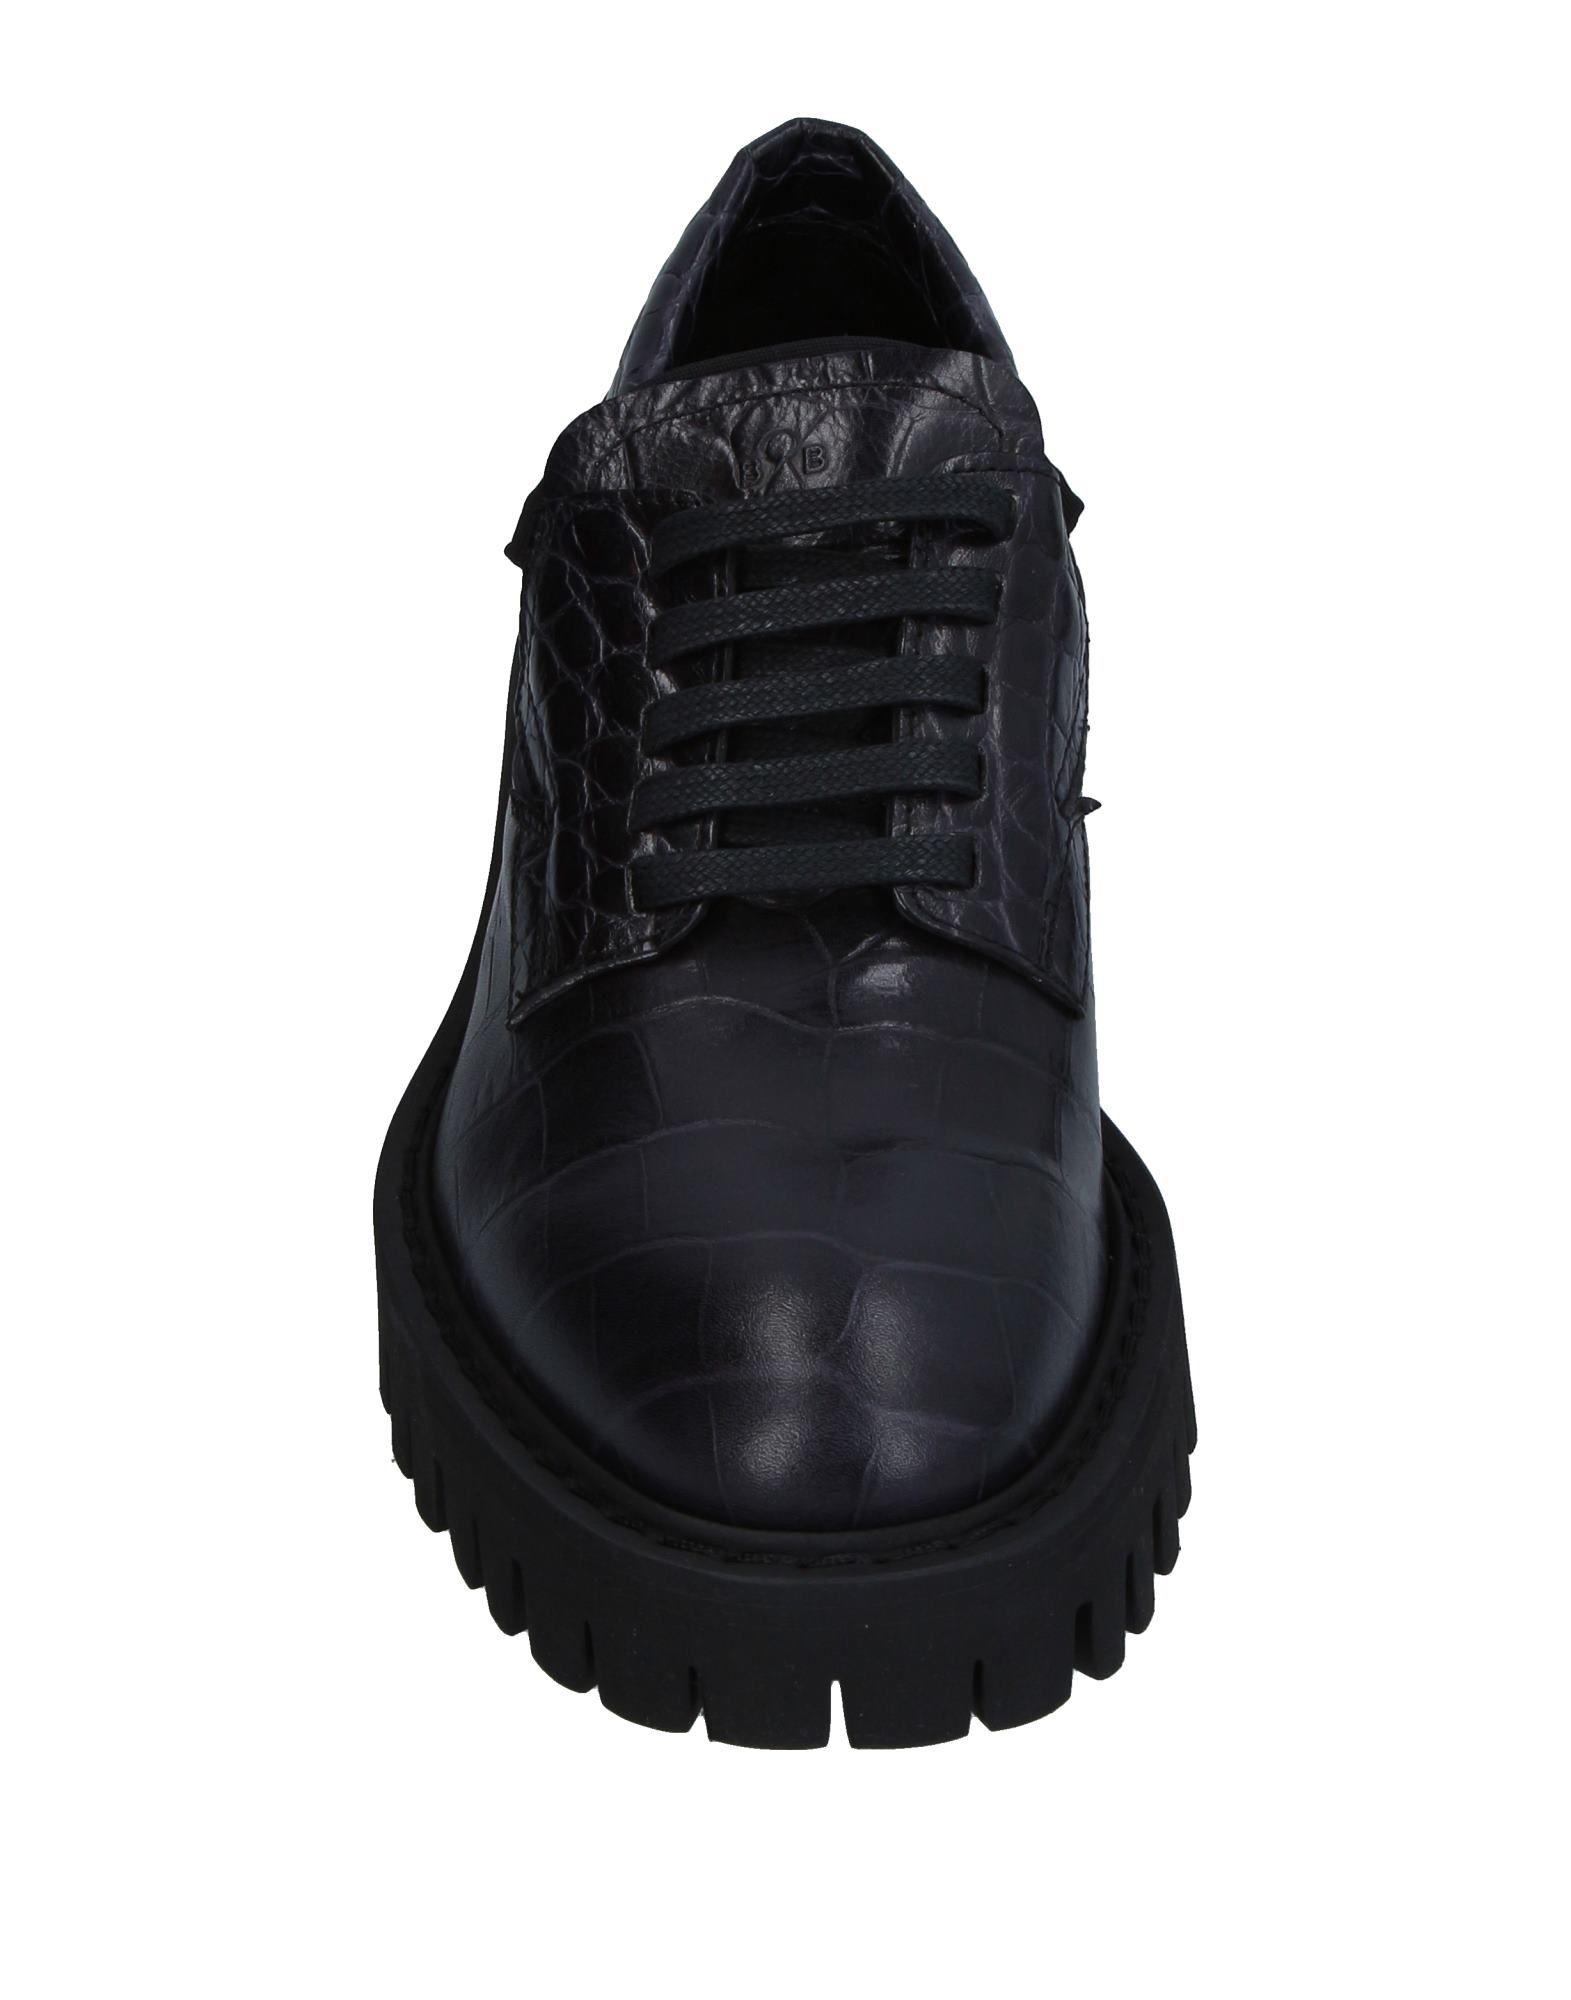 FOOTWEAR - Lace-up shoes Bruno Bordese oKaQfQpy